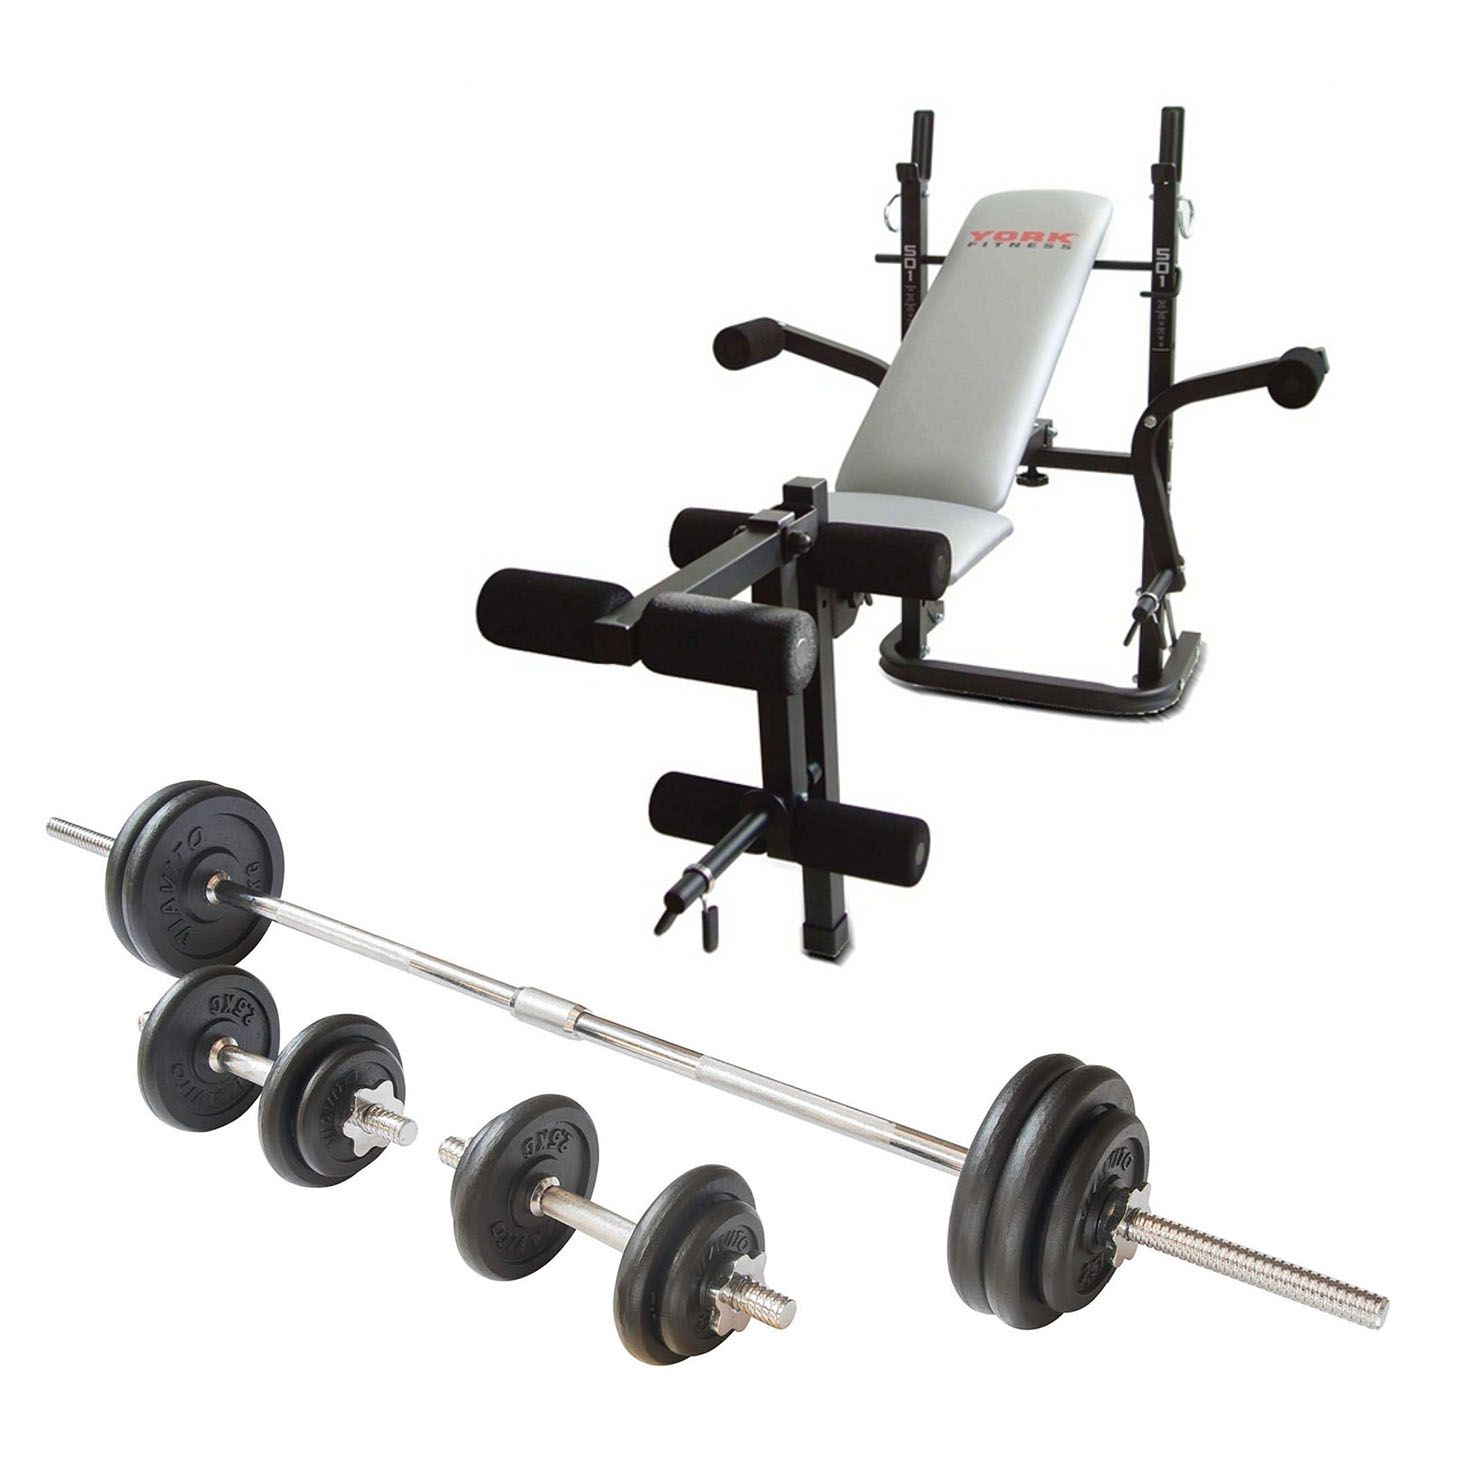 York b501 weight bench and viavito 50kg cast iron weight set Bench and weight set